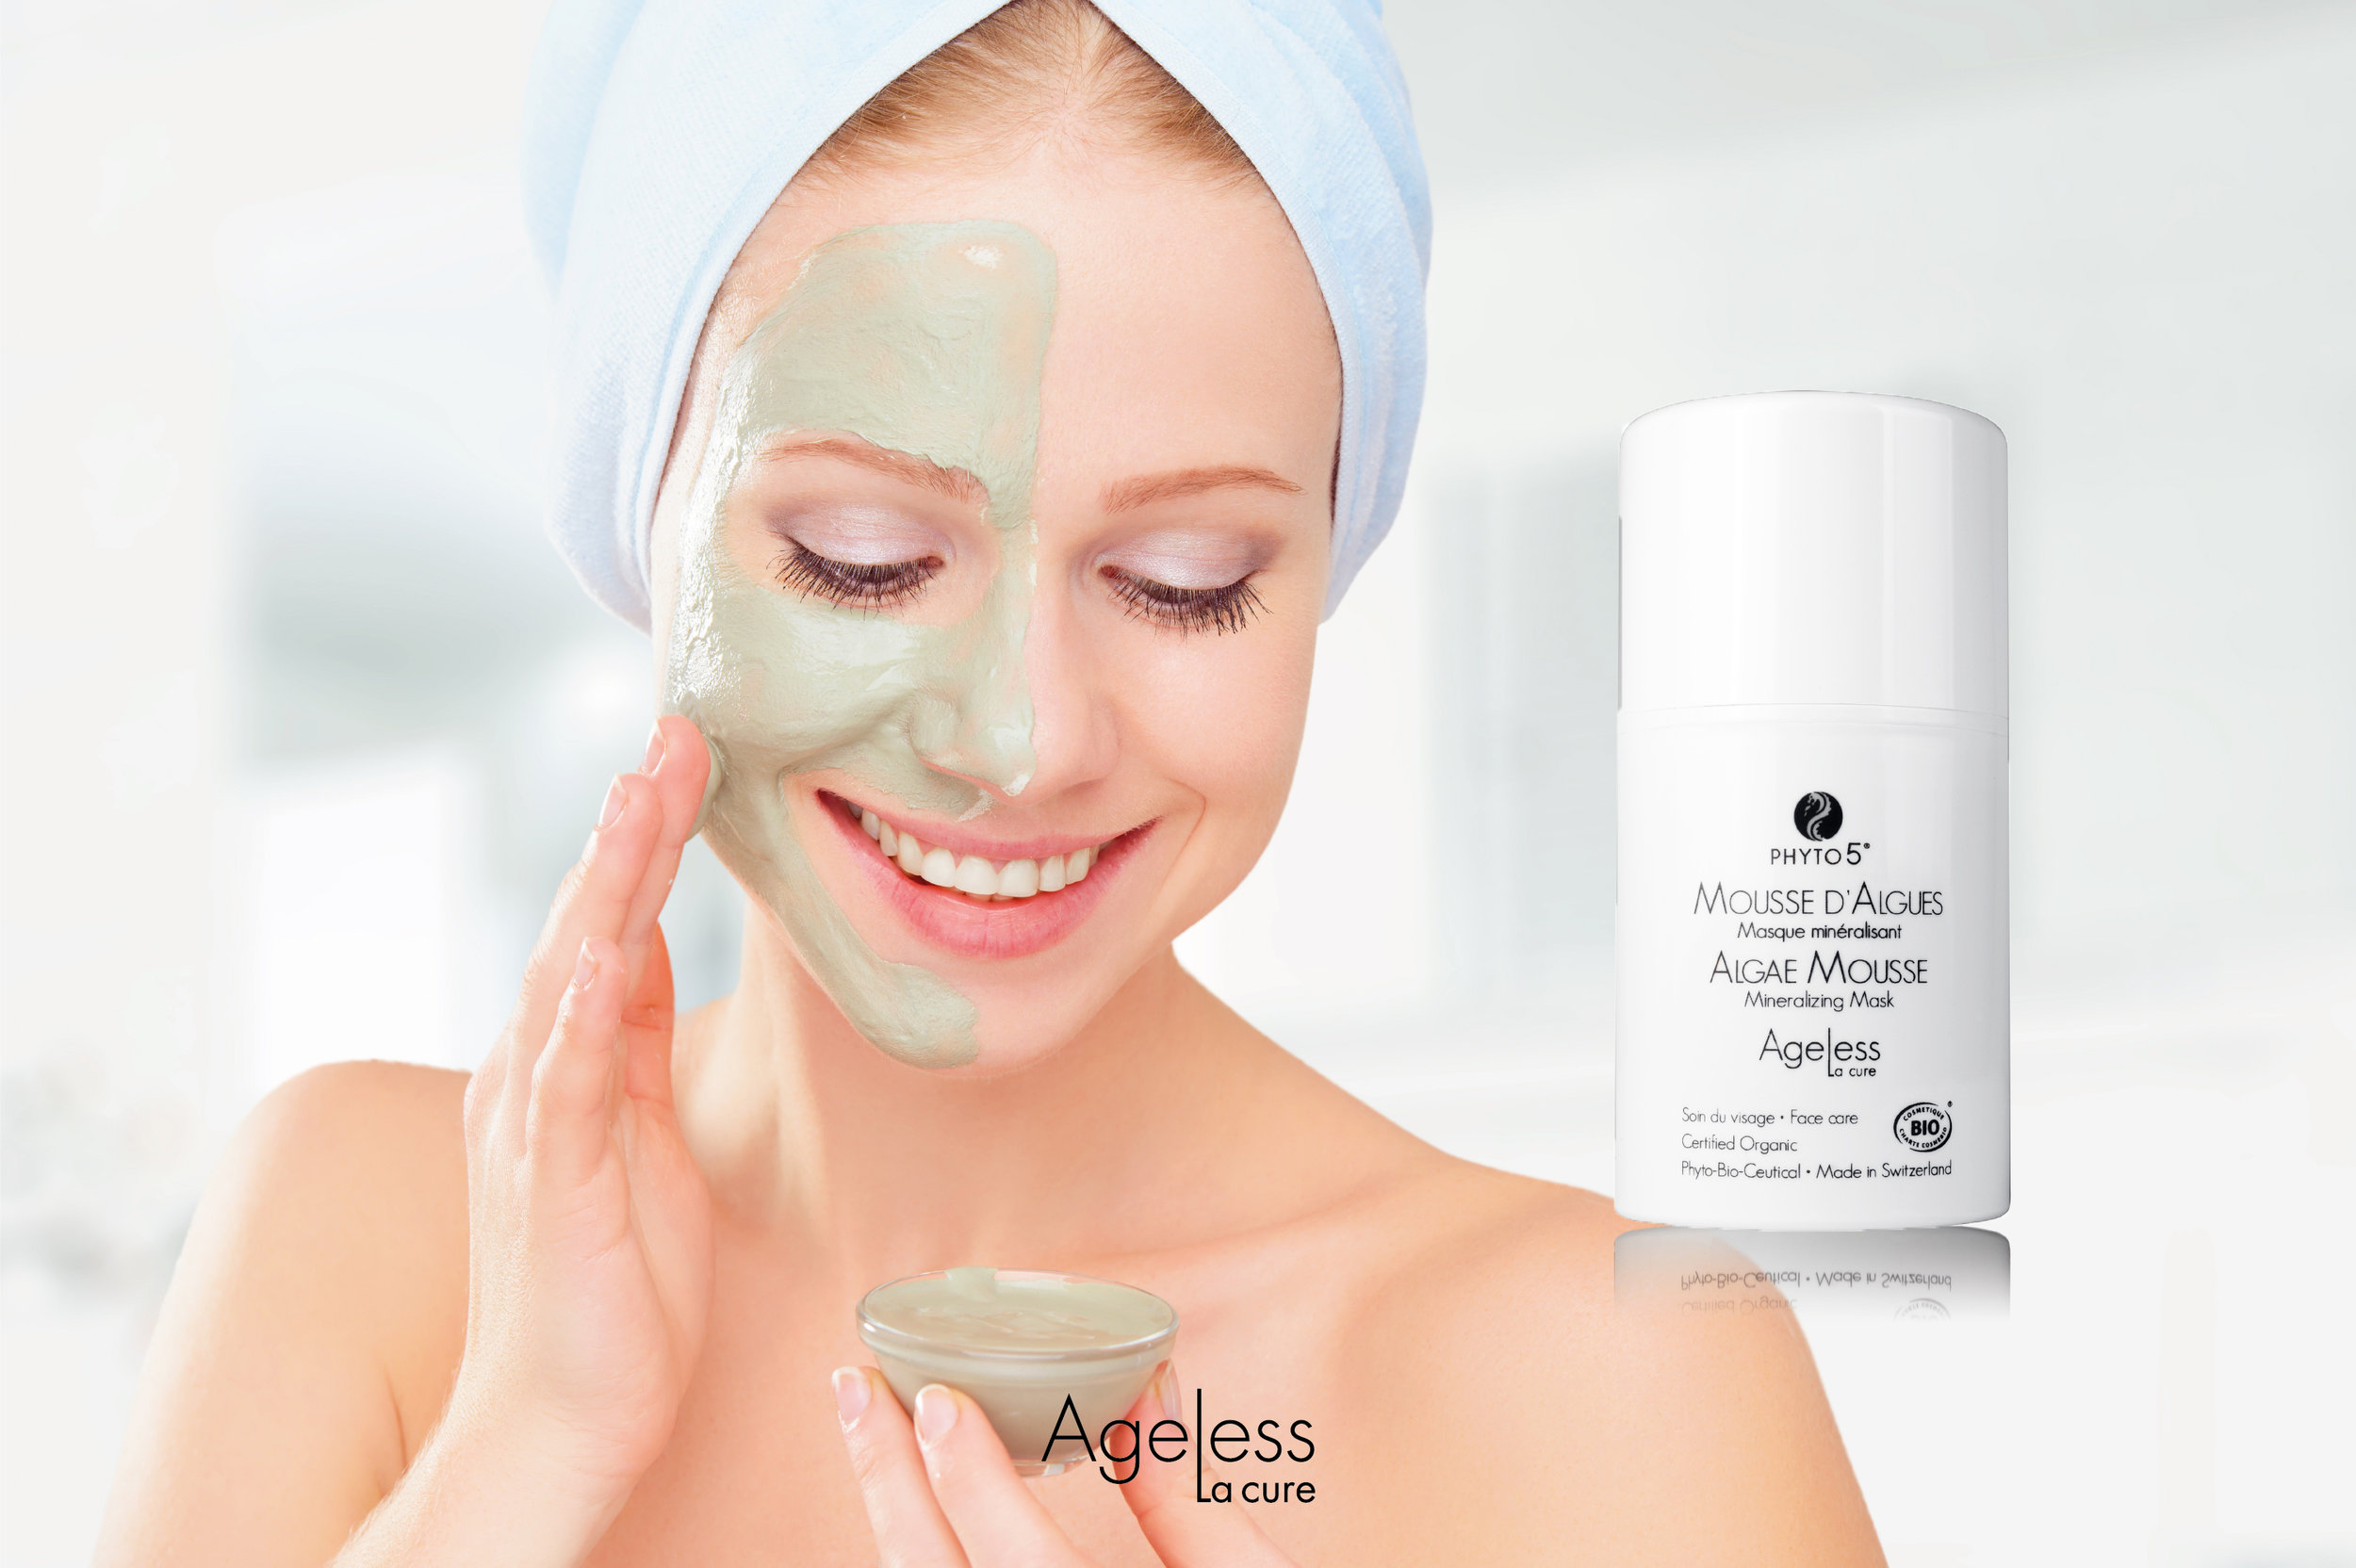 A woman enjoying Ageless La Cure Algae Mousse brushed onto one half of her face